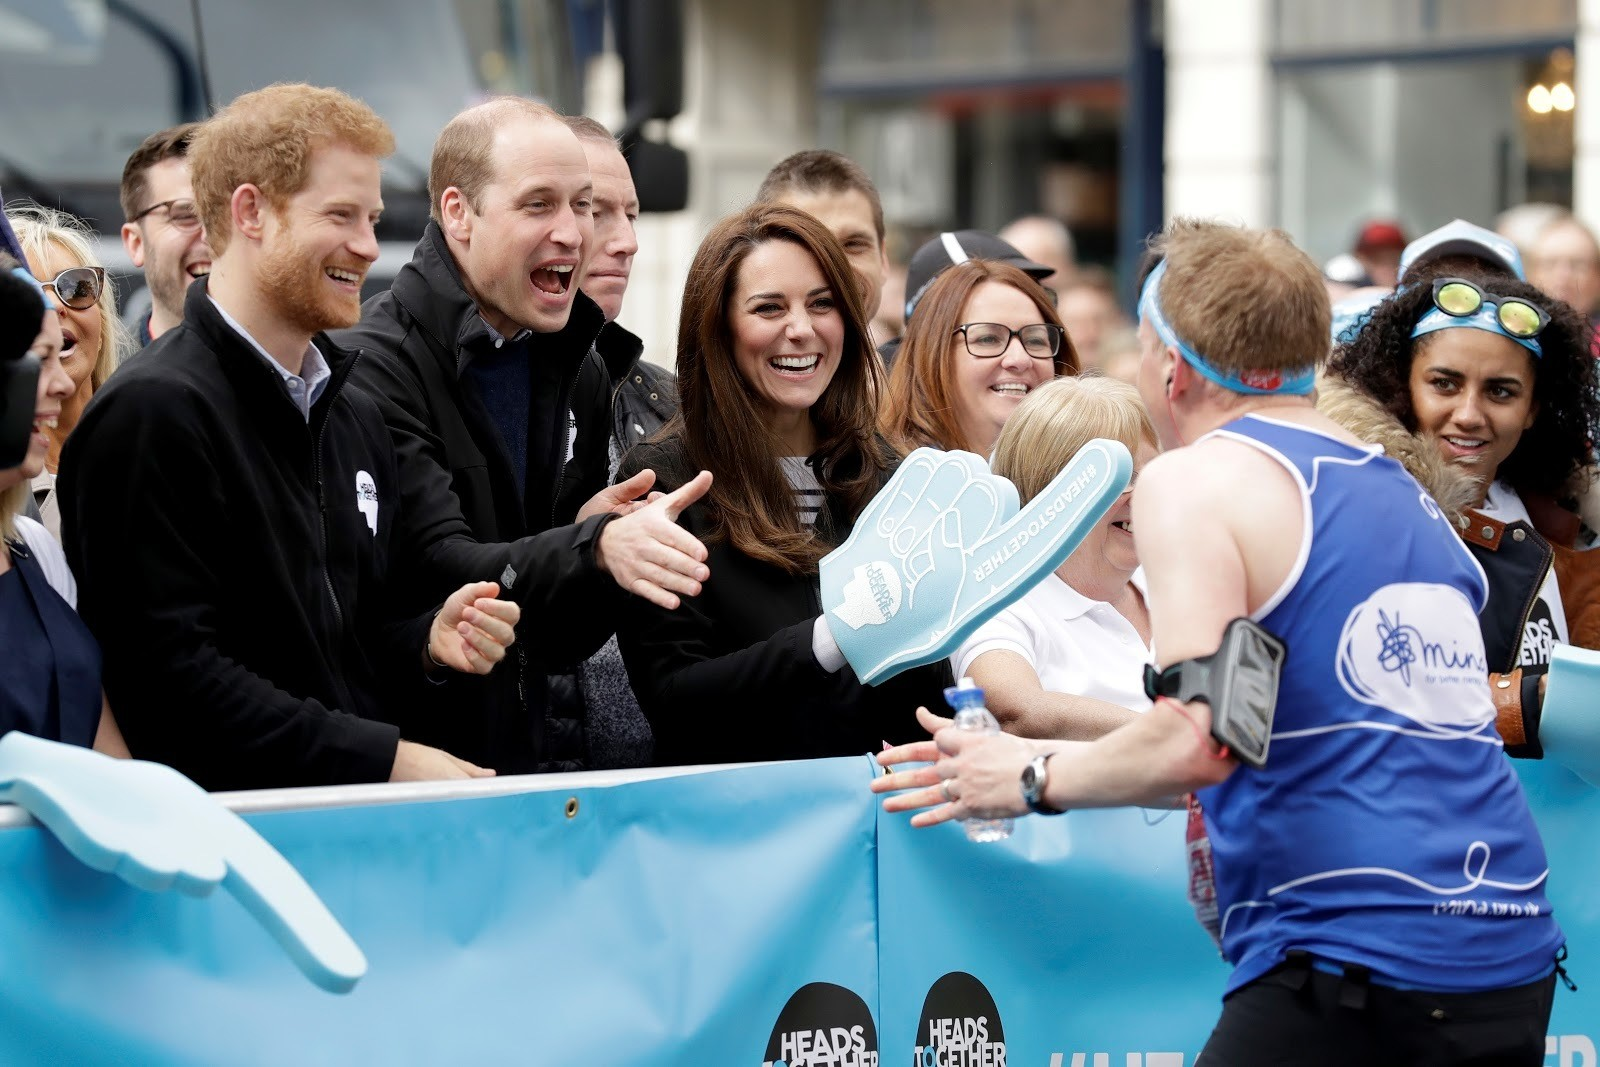 The Duke and Duchess of Cambridge and Prince Harry, the Duke of Sussex, cheer on runners along the route of the 2017 London Marathon